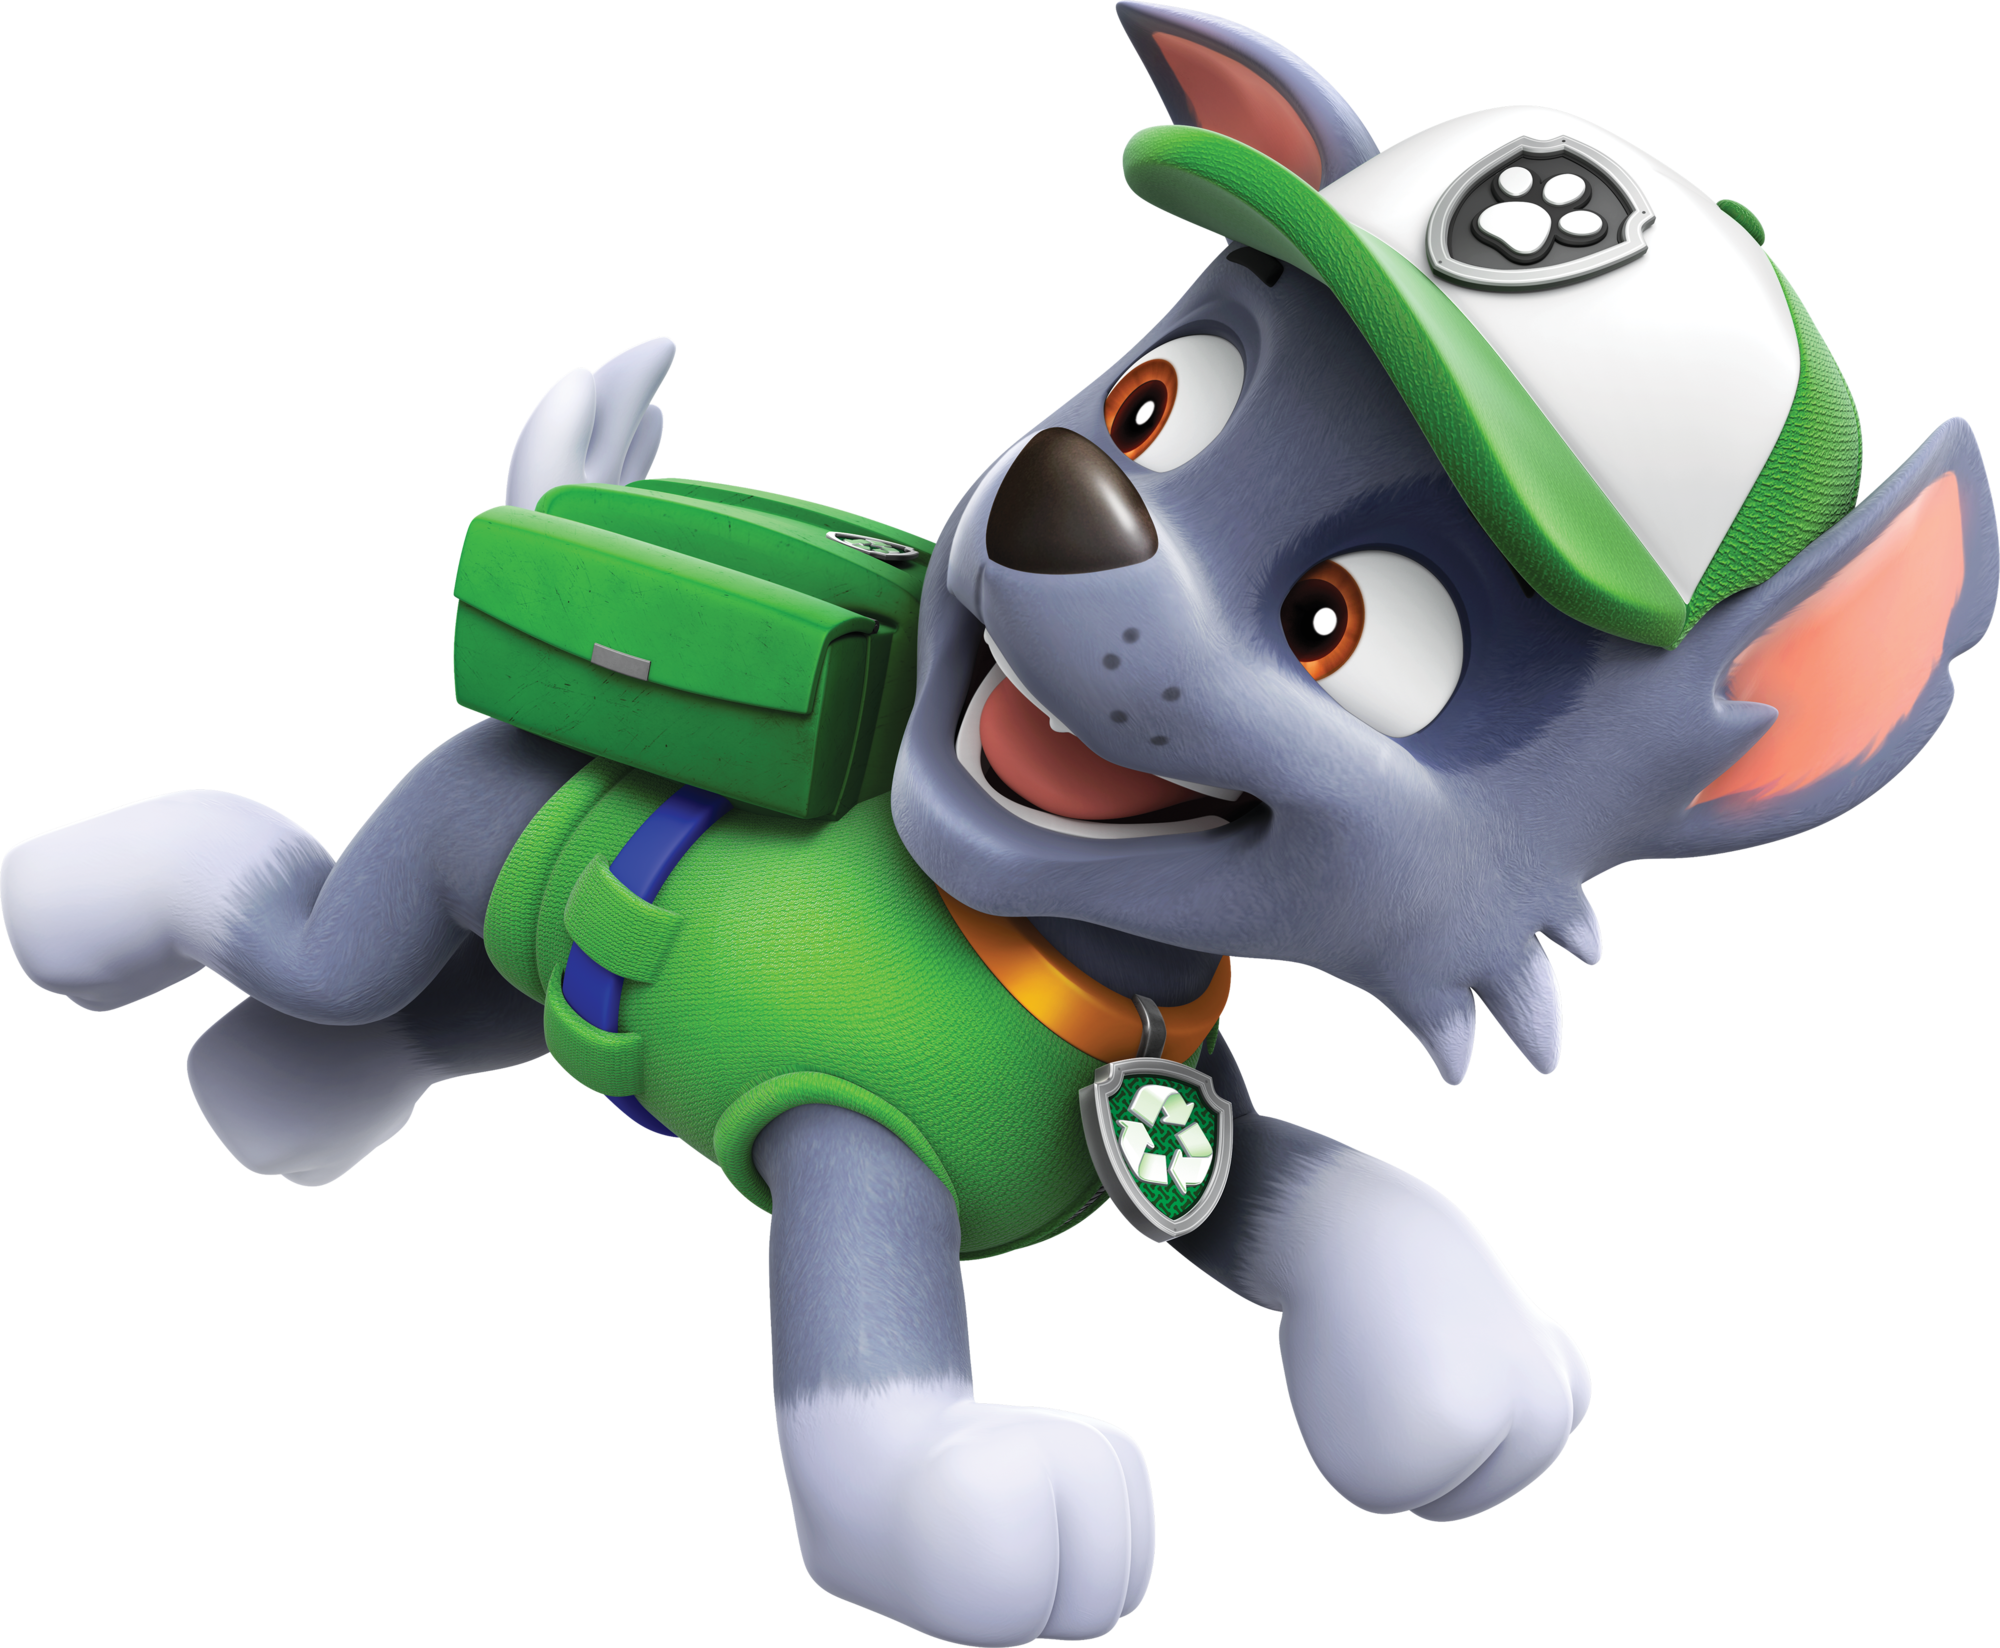 Paw Patrol Png Hd Transparent Paw Patrol Hdpng Images Pluspng